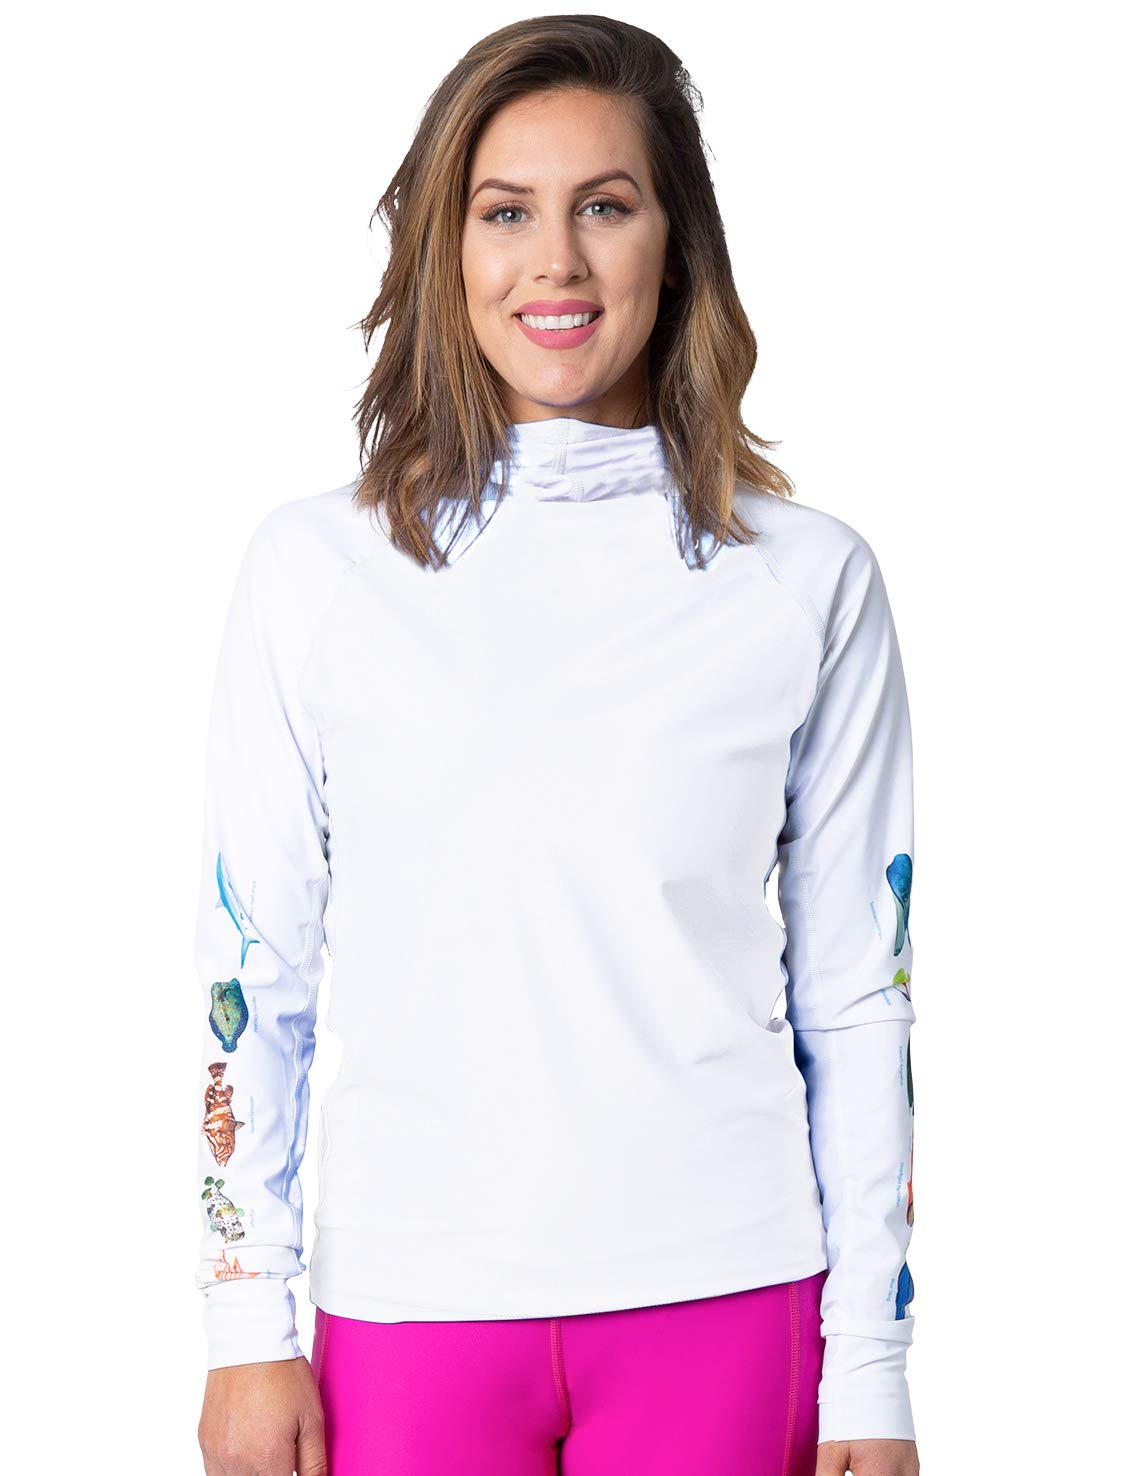 Tuga Women's Hooded Snorkel Rash Guard - Caribbean Fish ID (UPF 50+), White, Large by Tuga Sunwear